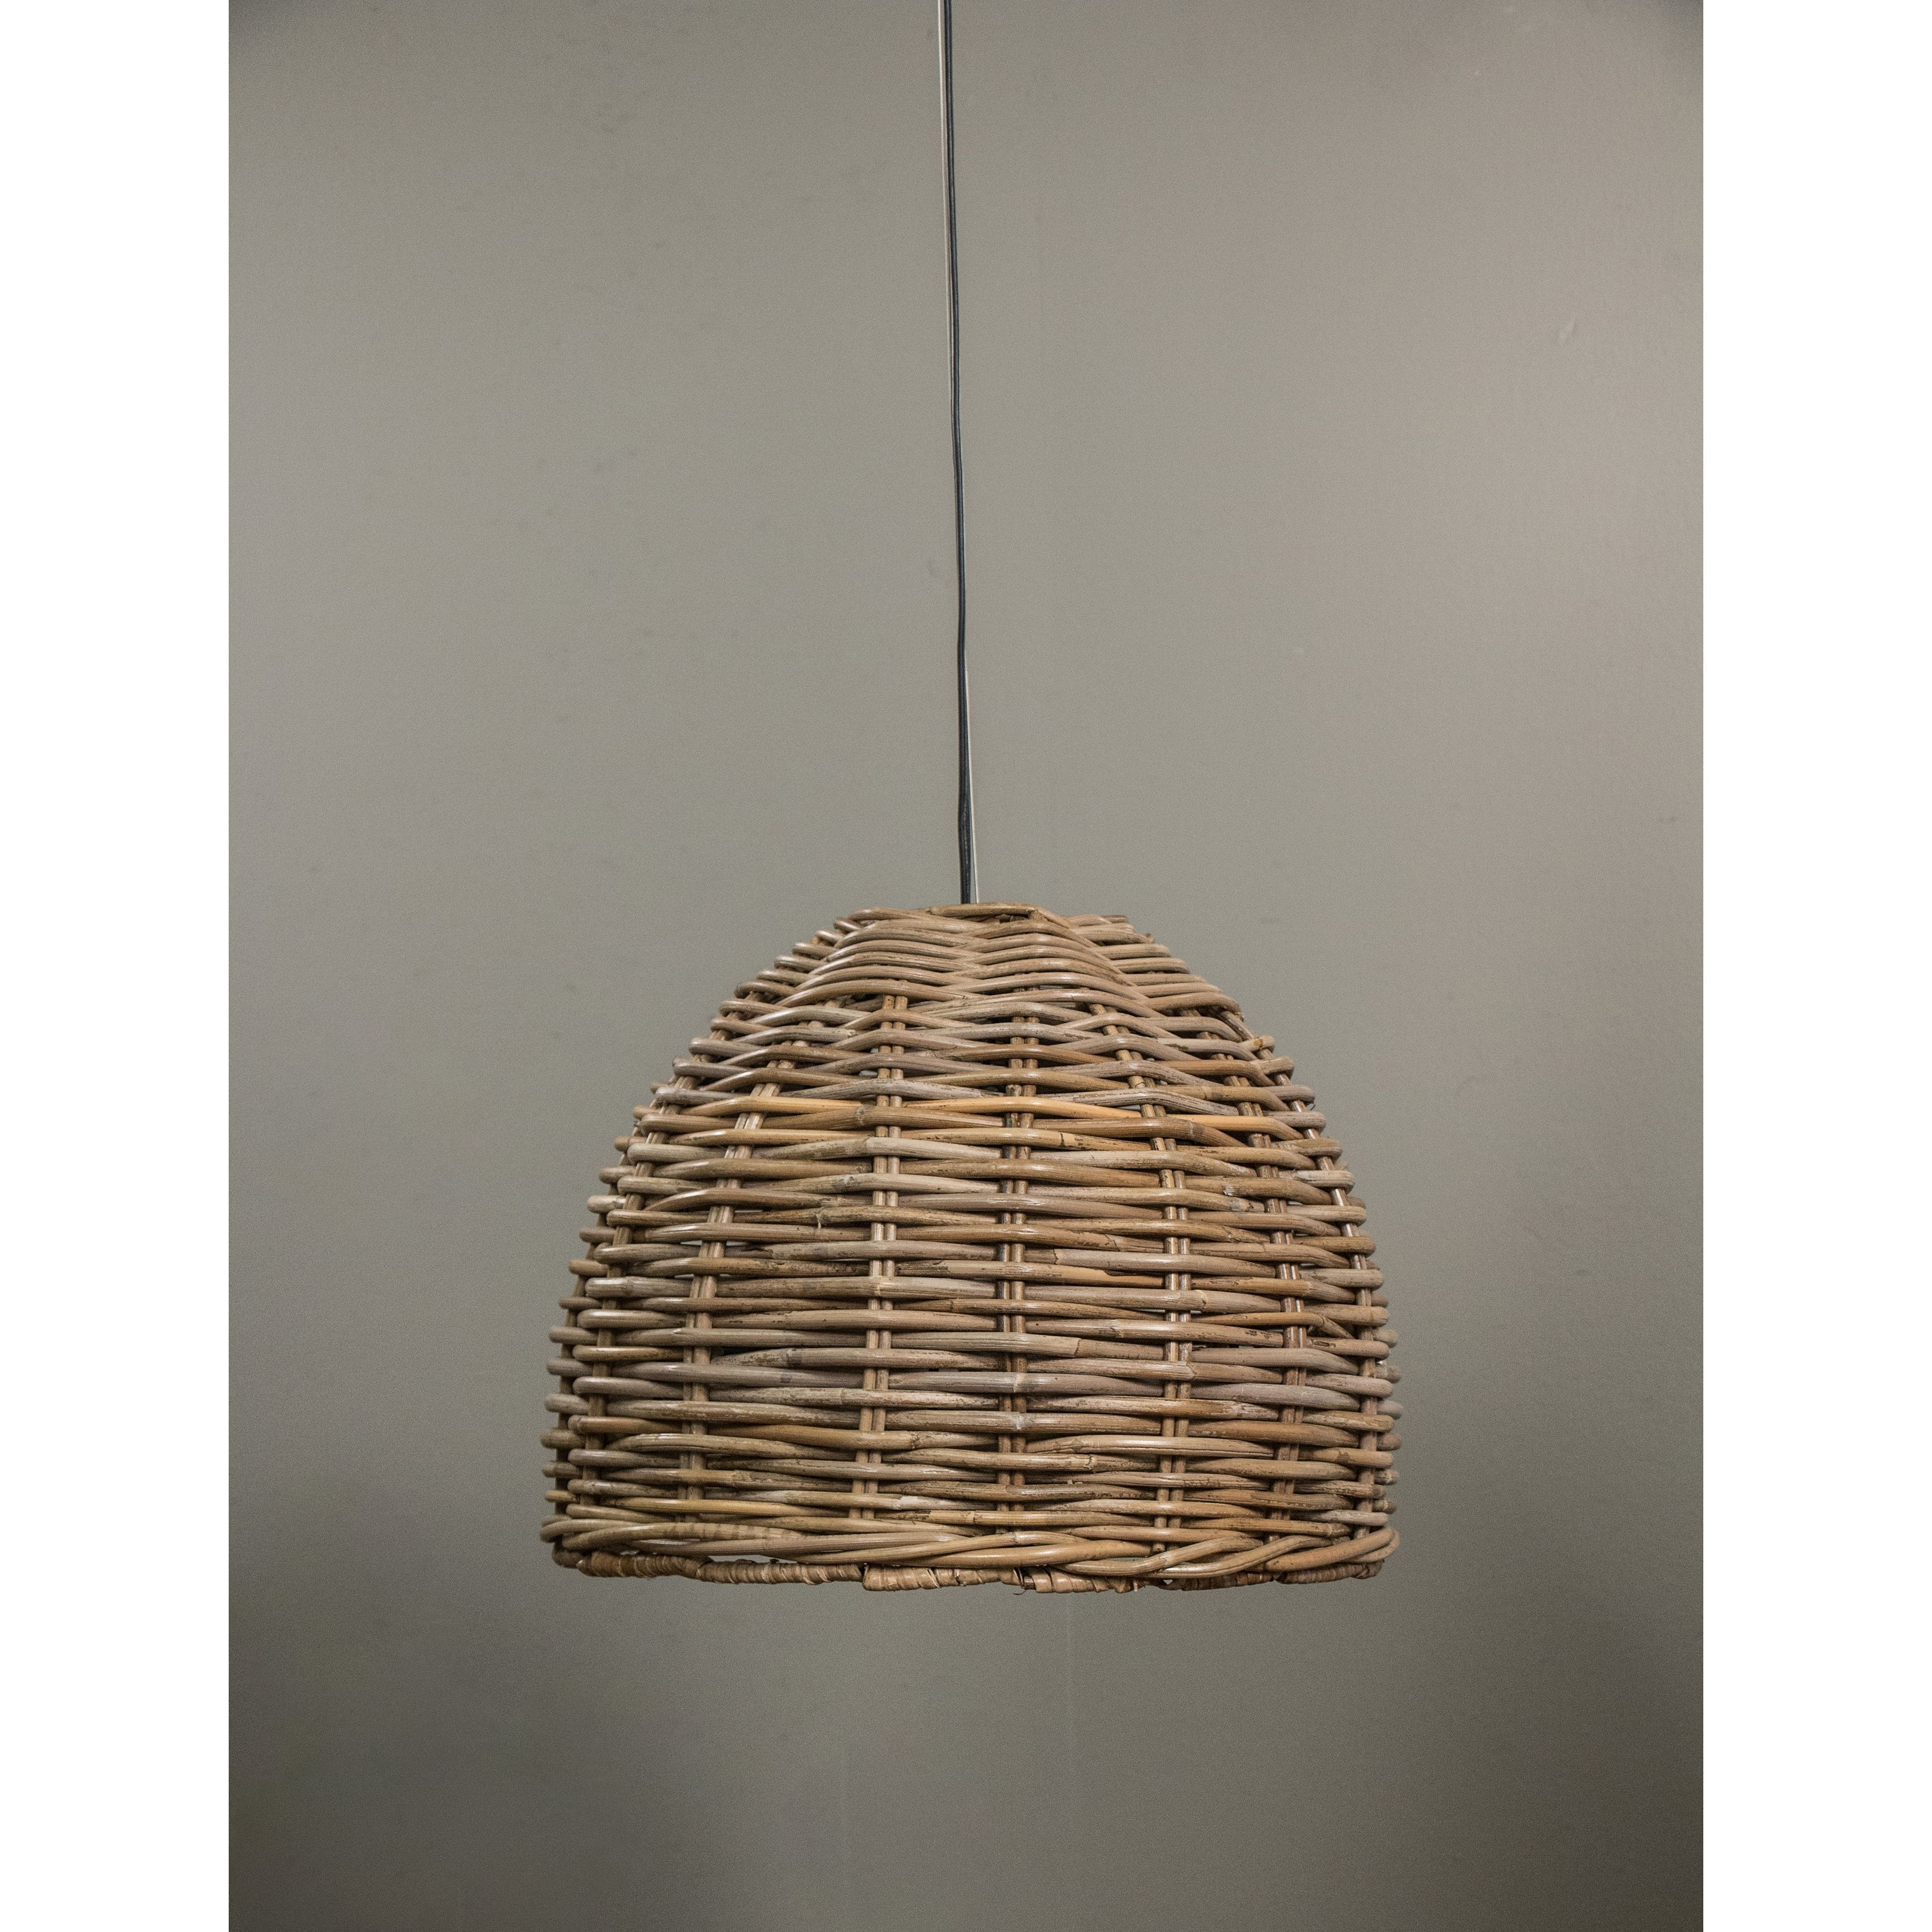 Favorite Our Dawson Hanging Lamp Is Made With The Natural Material, Rattan In Outdoor Rattan Hanging Lights (View 8 of 20)